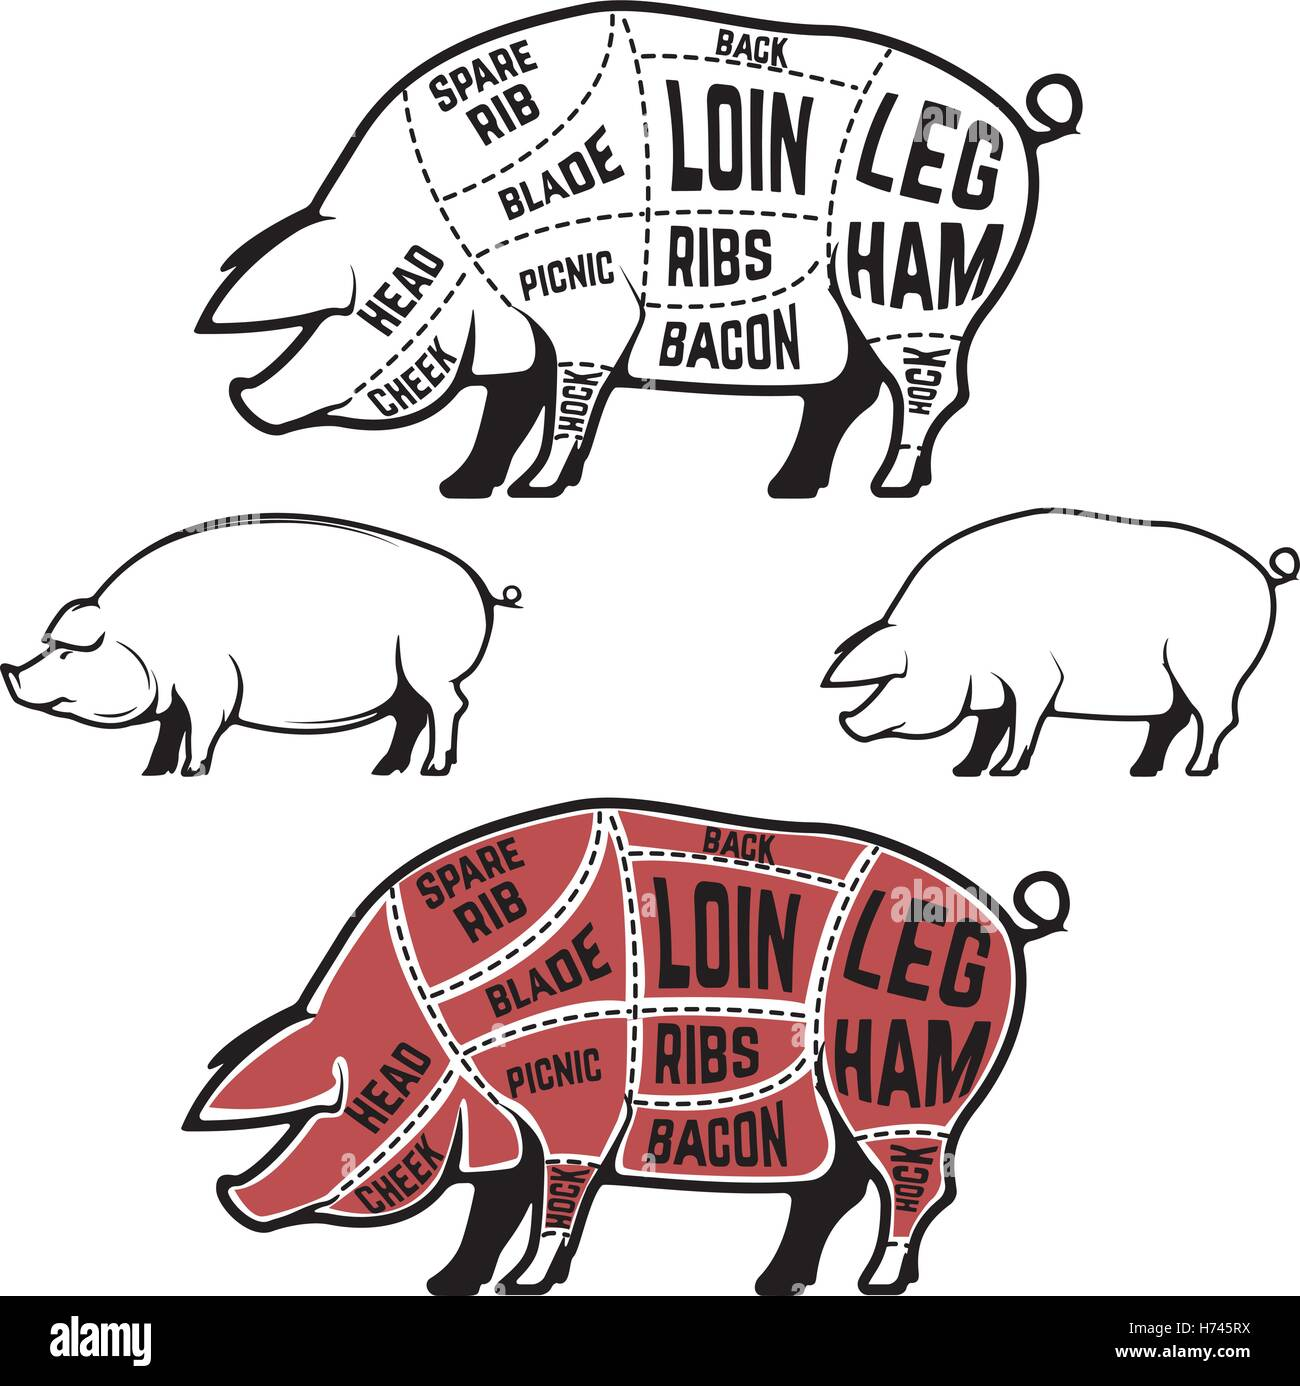 pig cuts diagram human muscle cell butcher scheme and guide pork set of stock silhouettes isolated on white background